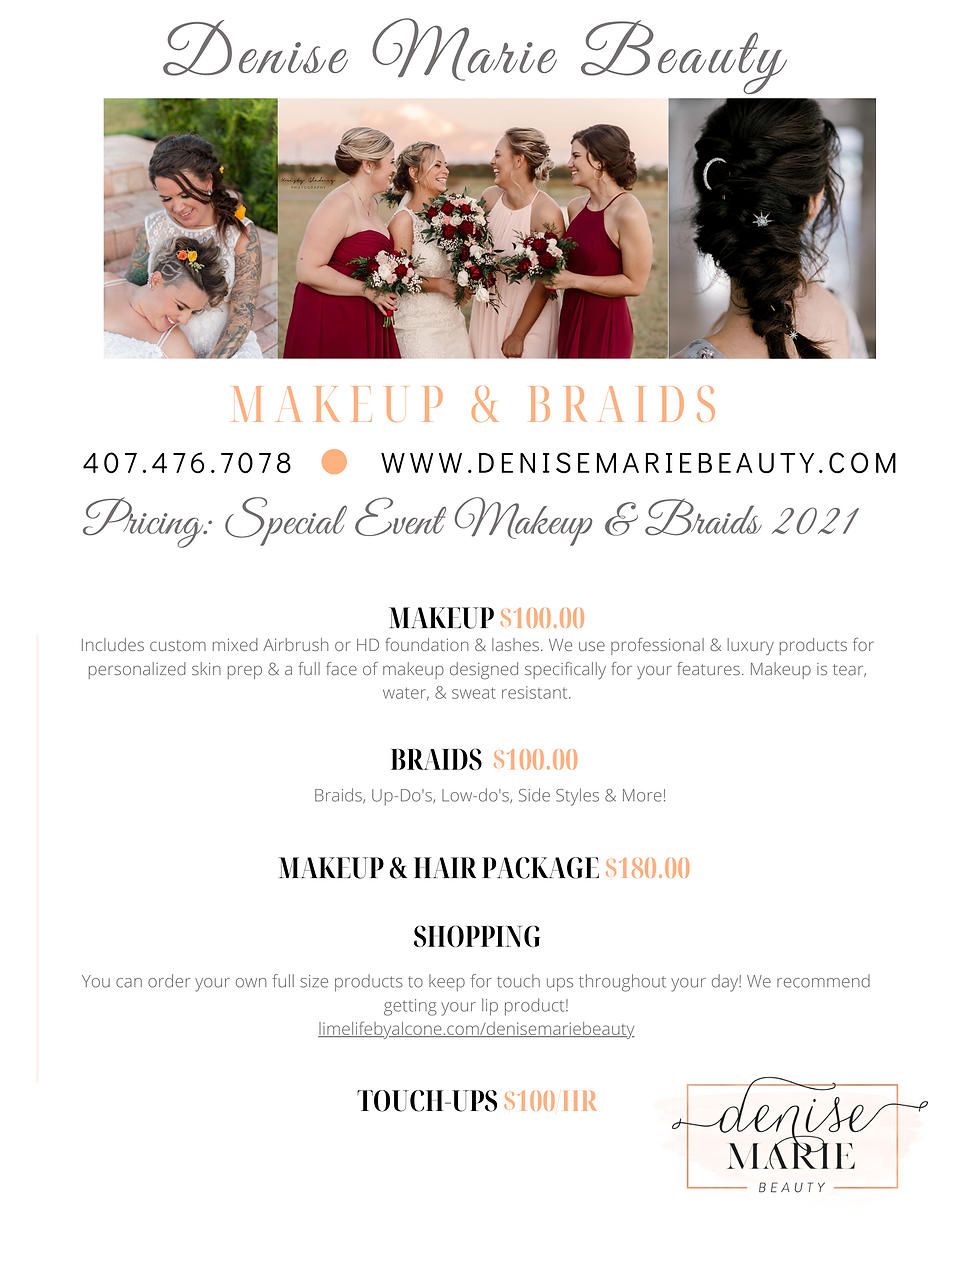 DENISE MARIE BEAUTY 2021 SPECIAL EVENT M